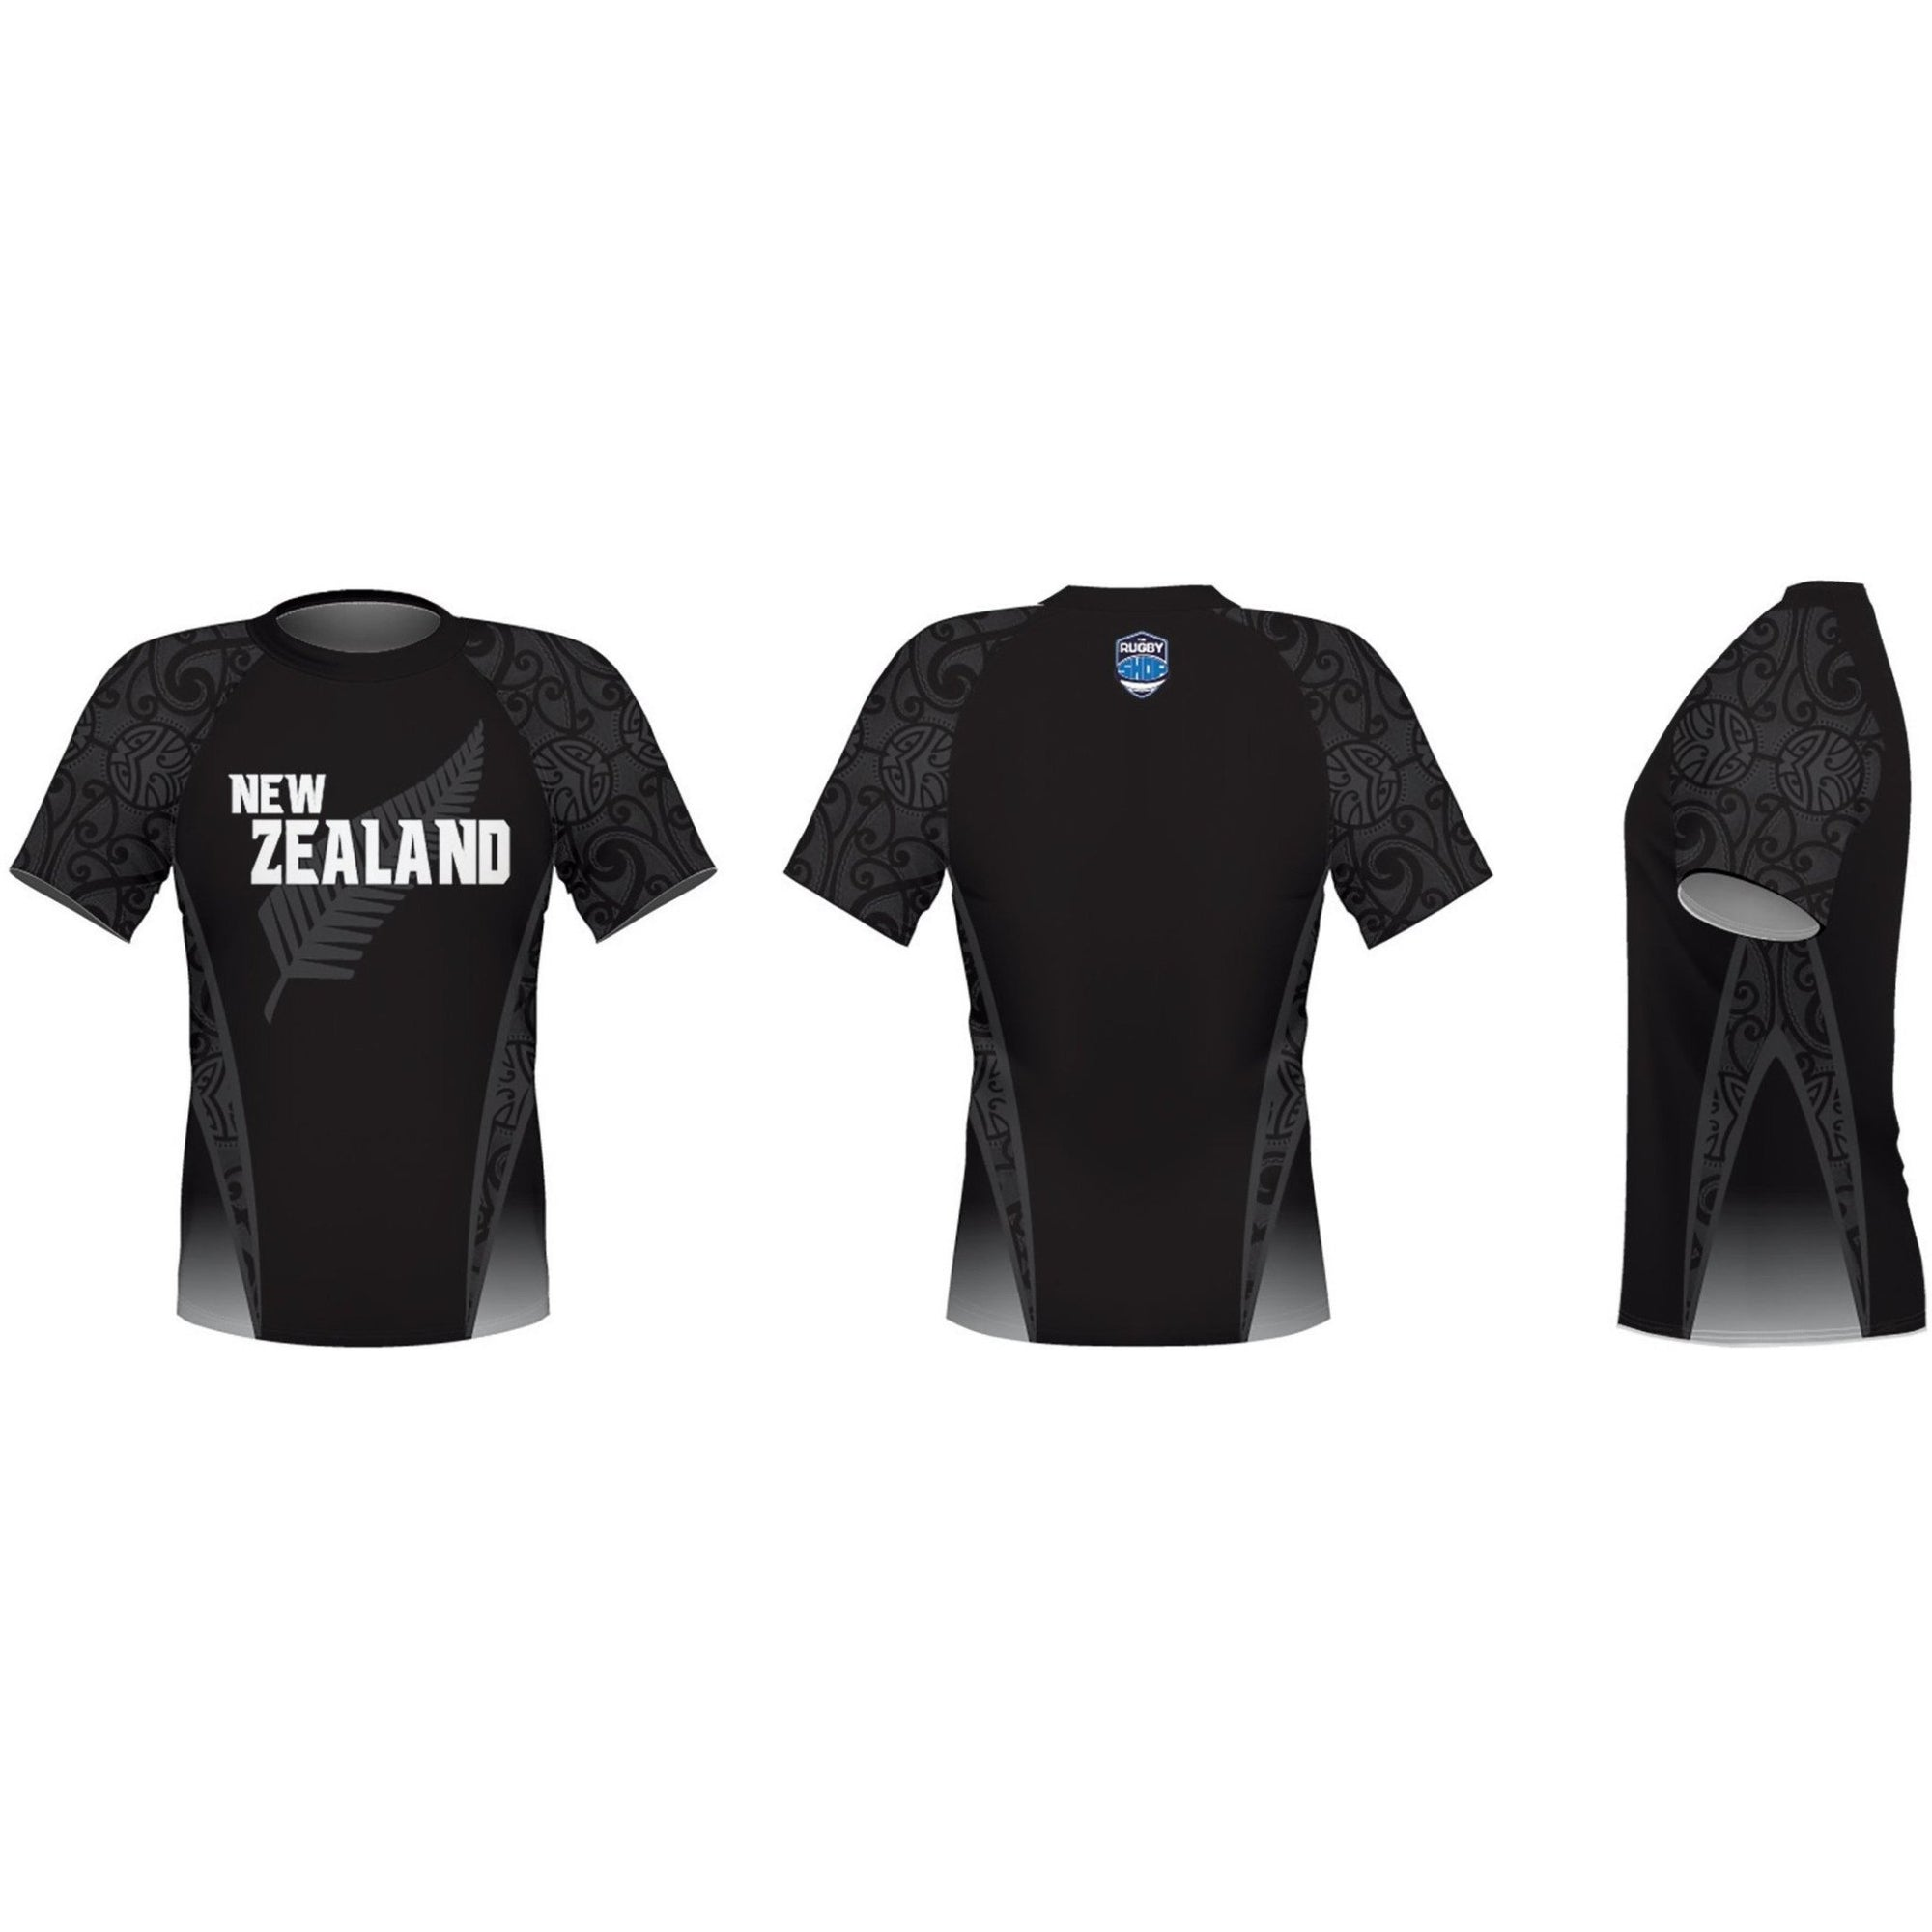 Konno International Supporter Tee - New Zealand - www.therugbyshop.com